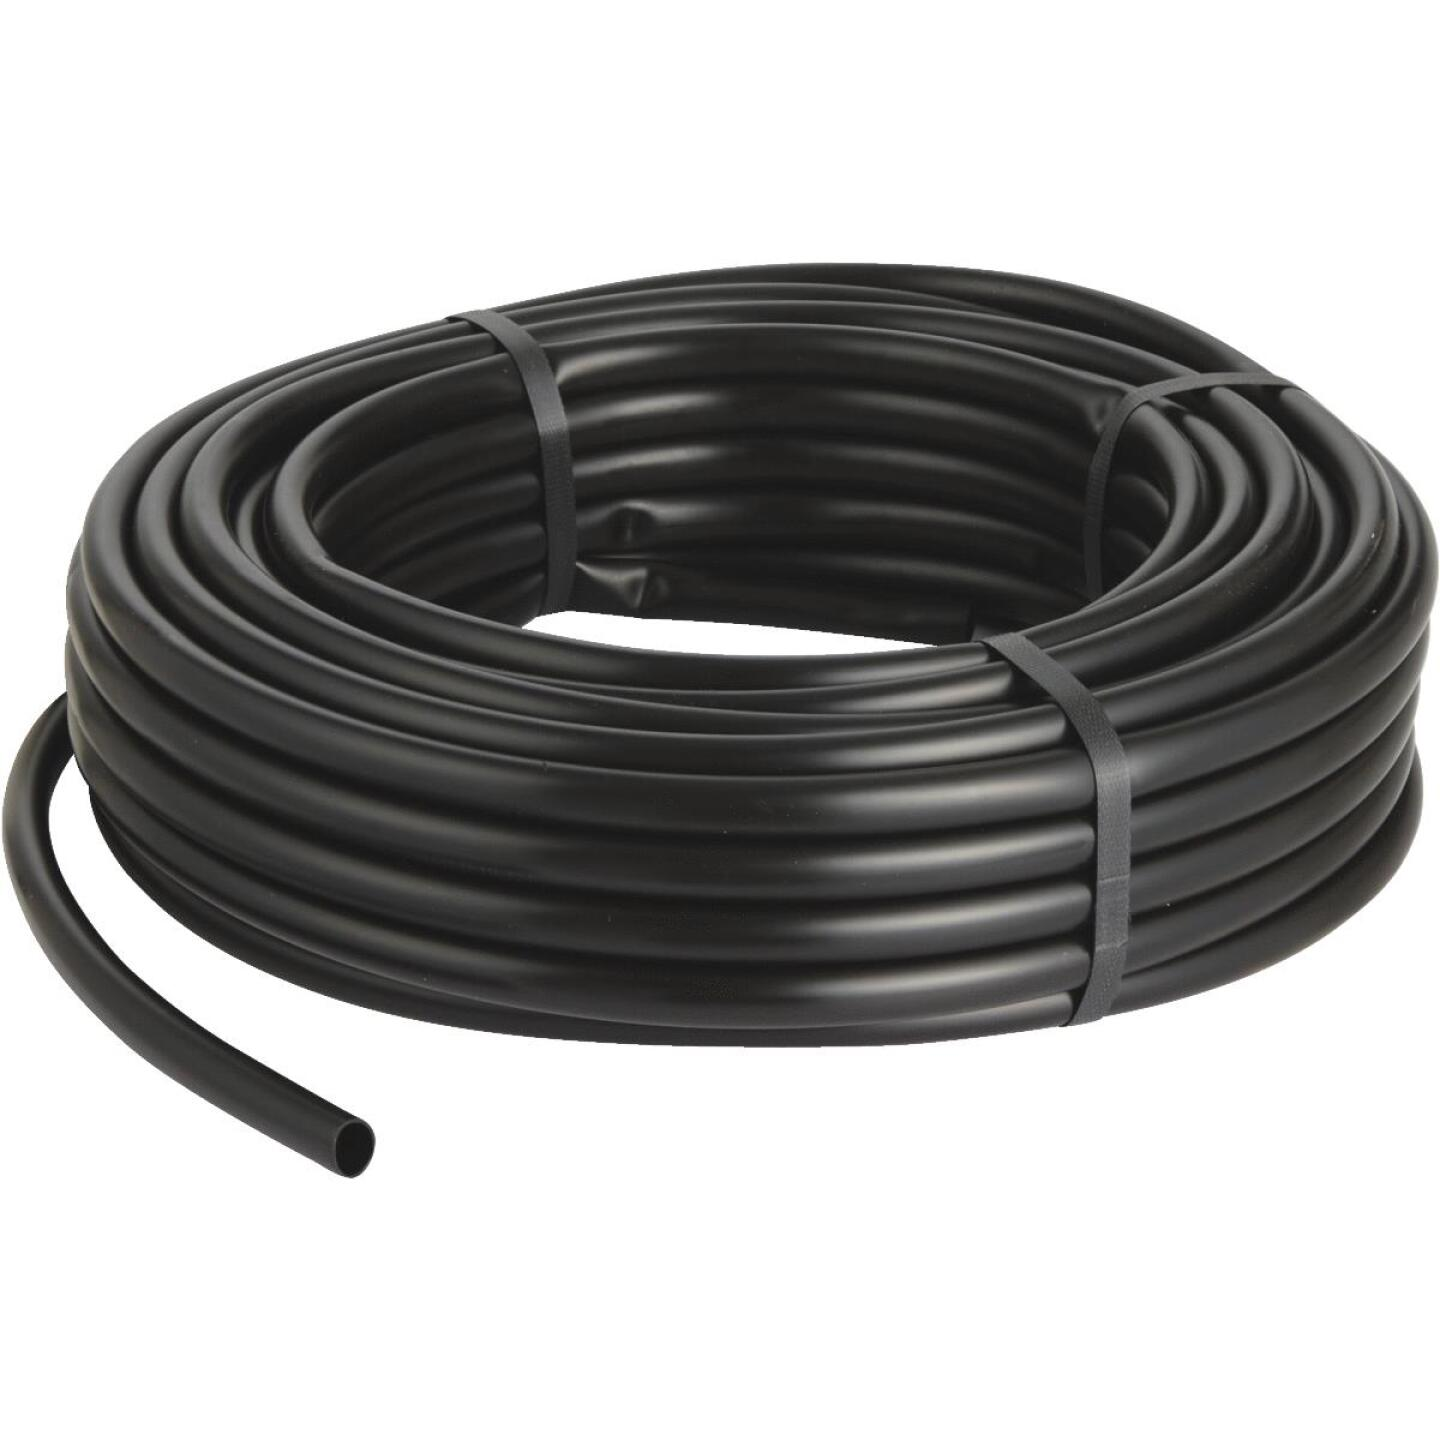 Raindrip 5/8 In. X 100 Ft. Black Poly Primary Drip Tubing Image 1